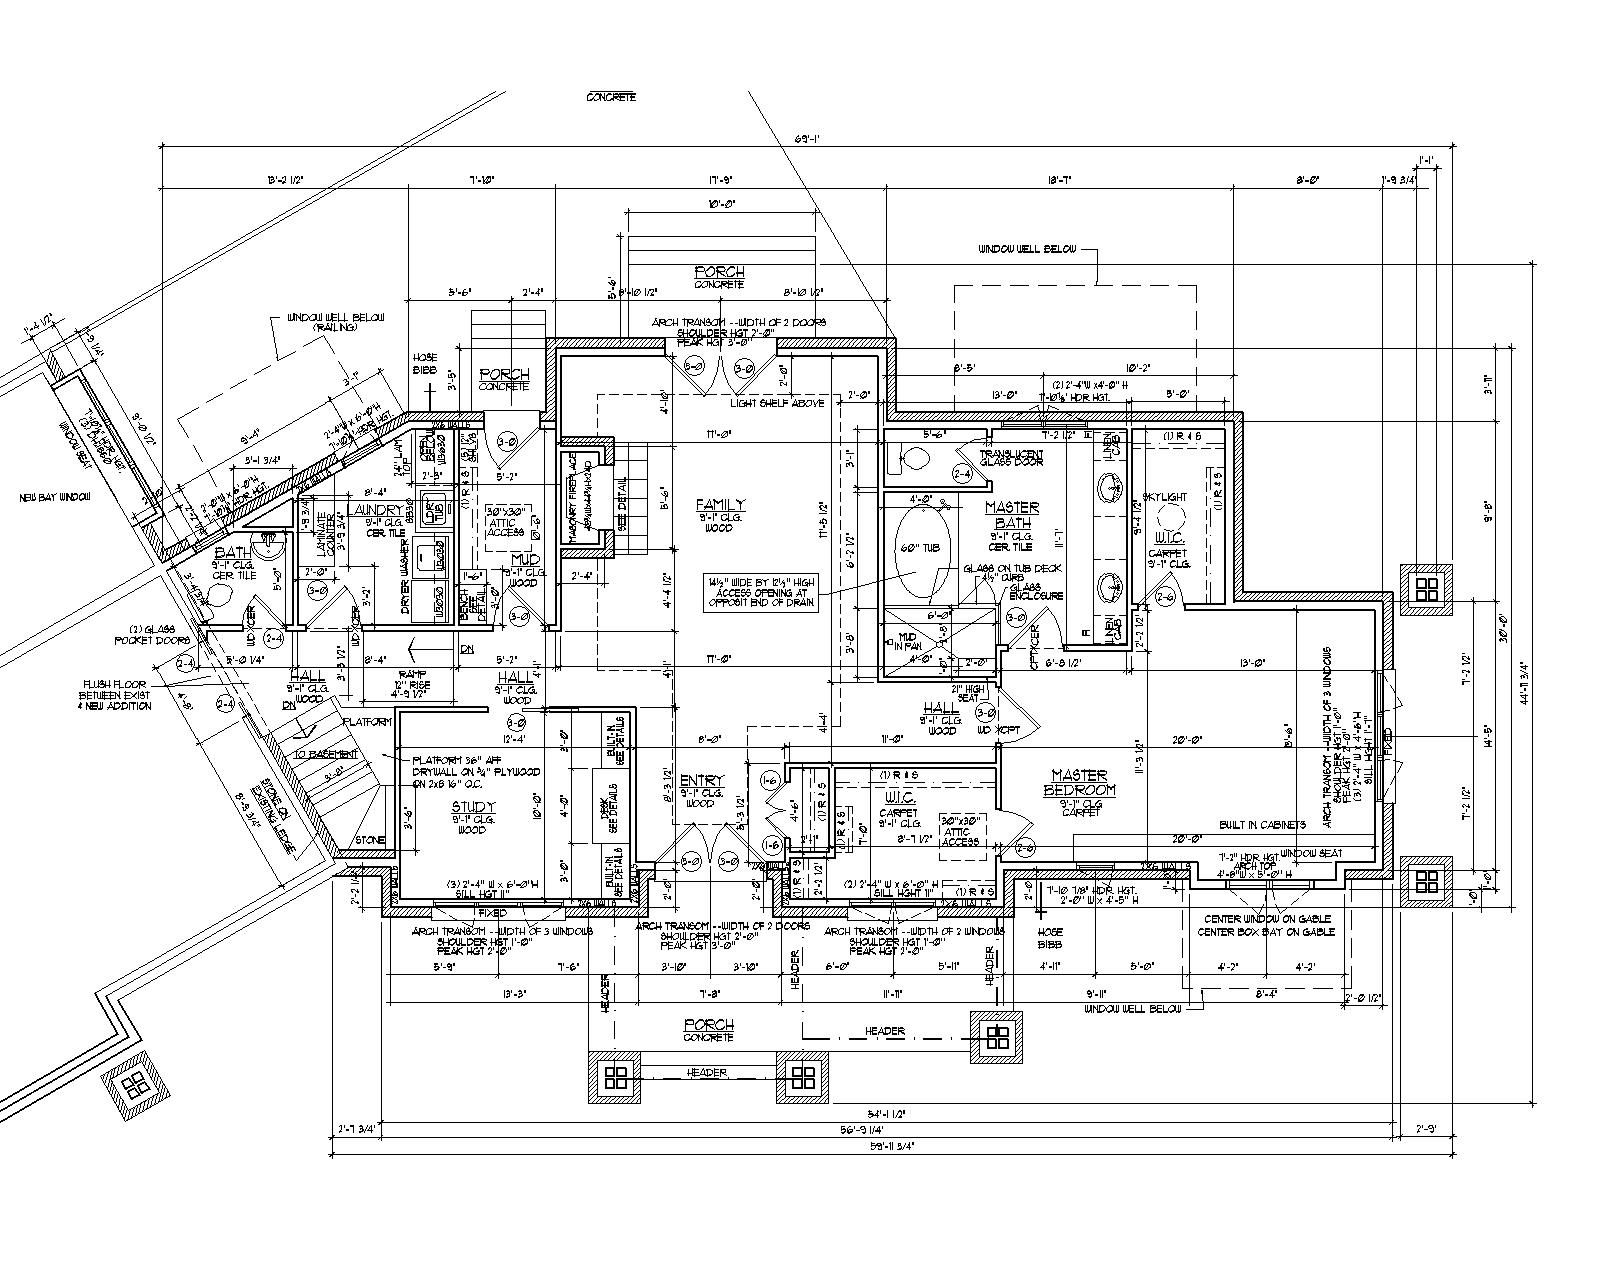 2d autocad house plans residential building drawings cad for Blueprint builder free